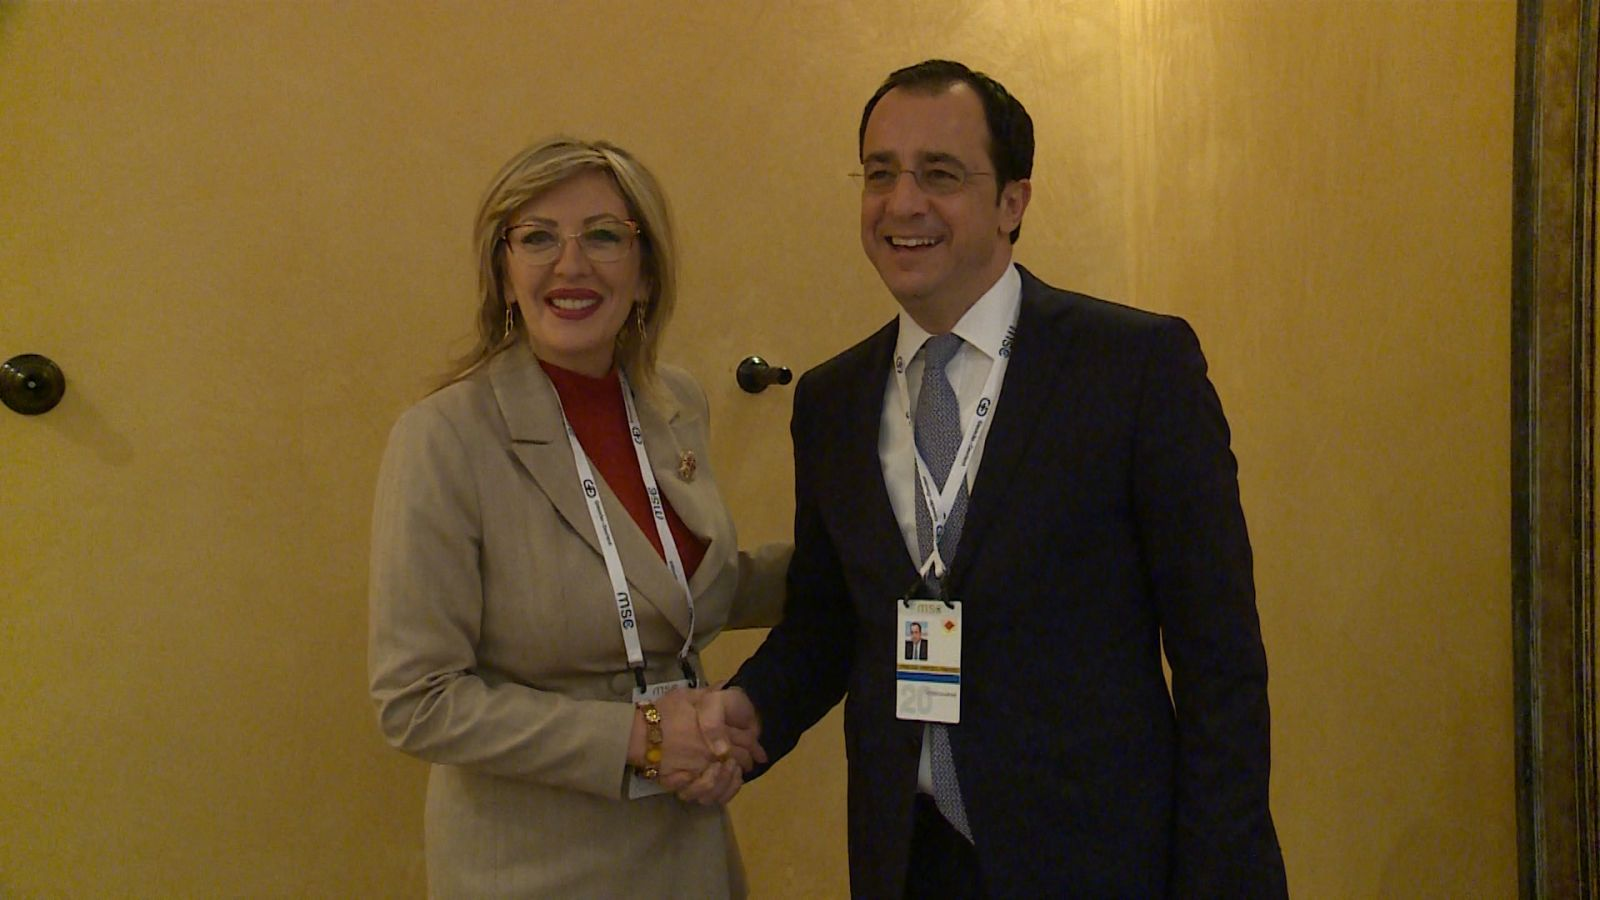 J. Joksimović: We must invest in friendships with countries that support us